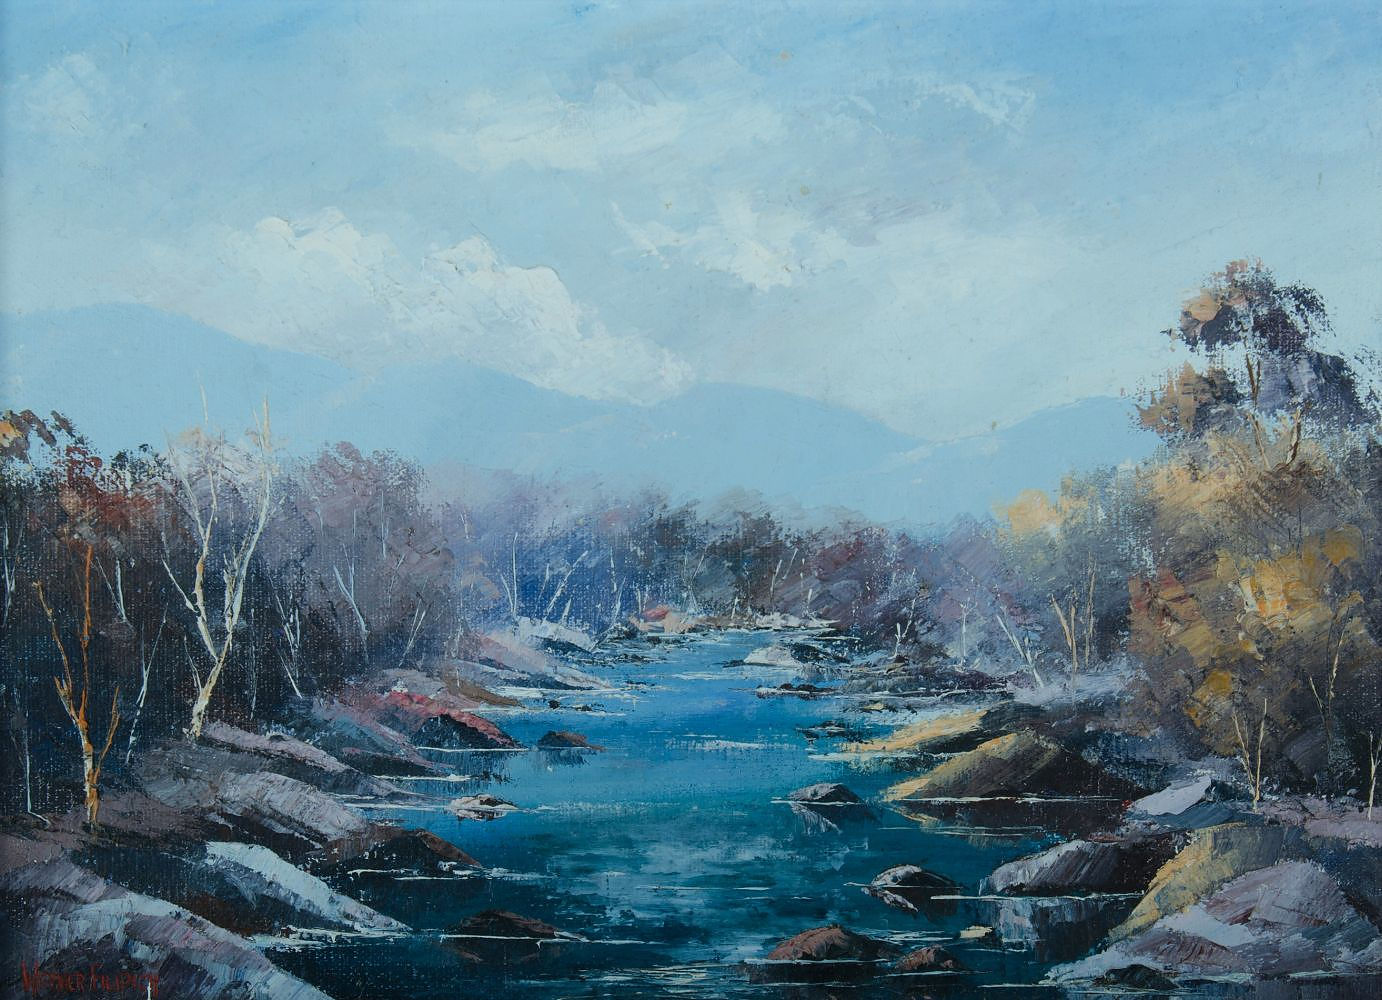 'FILIPICH, Werner (b.1943) Australian River Oil on Canvas on Board'